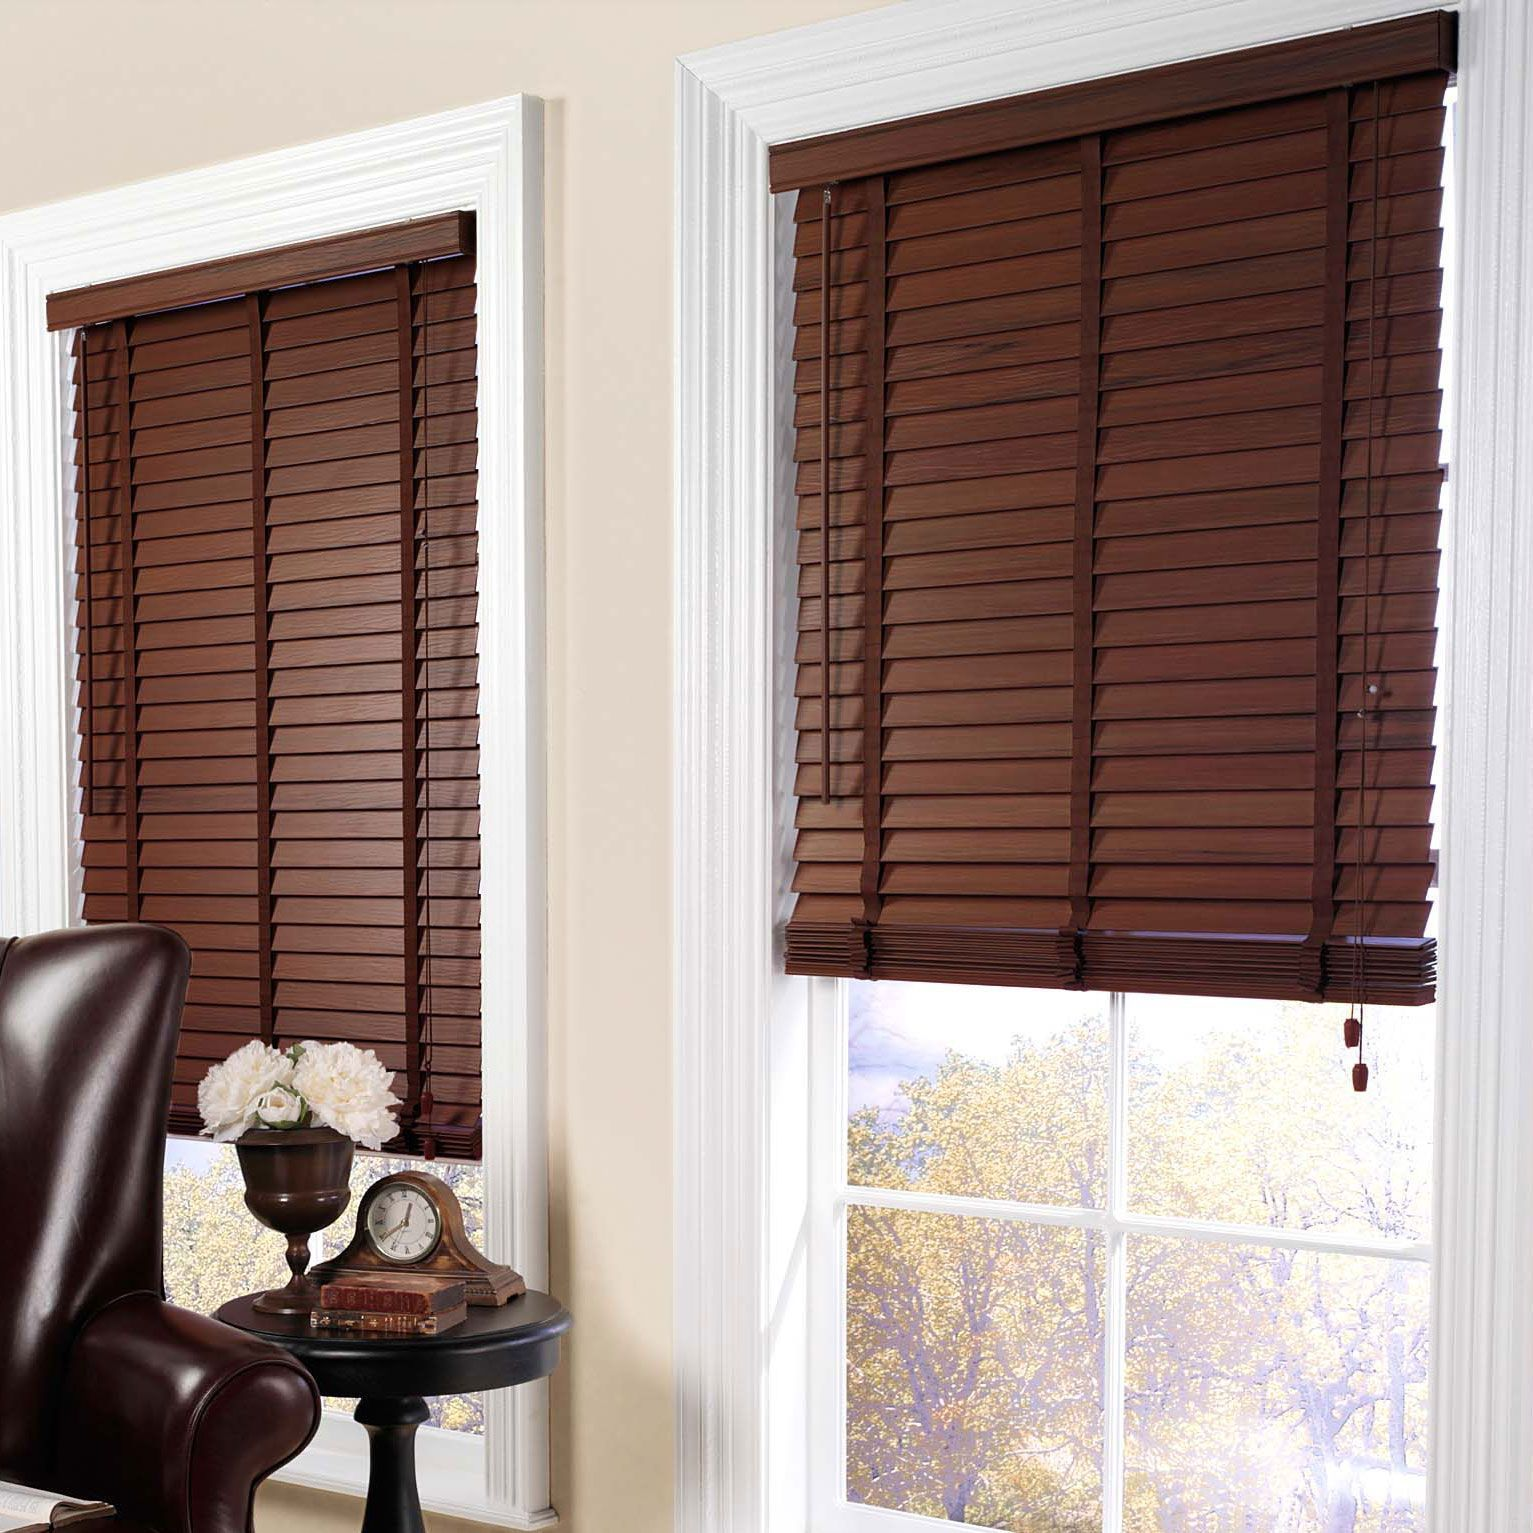 These dark wood blinds have great contrast against the clean white